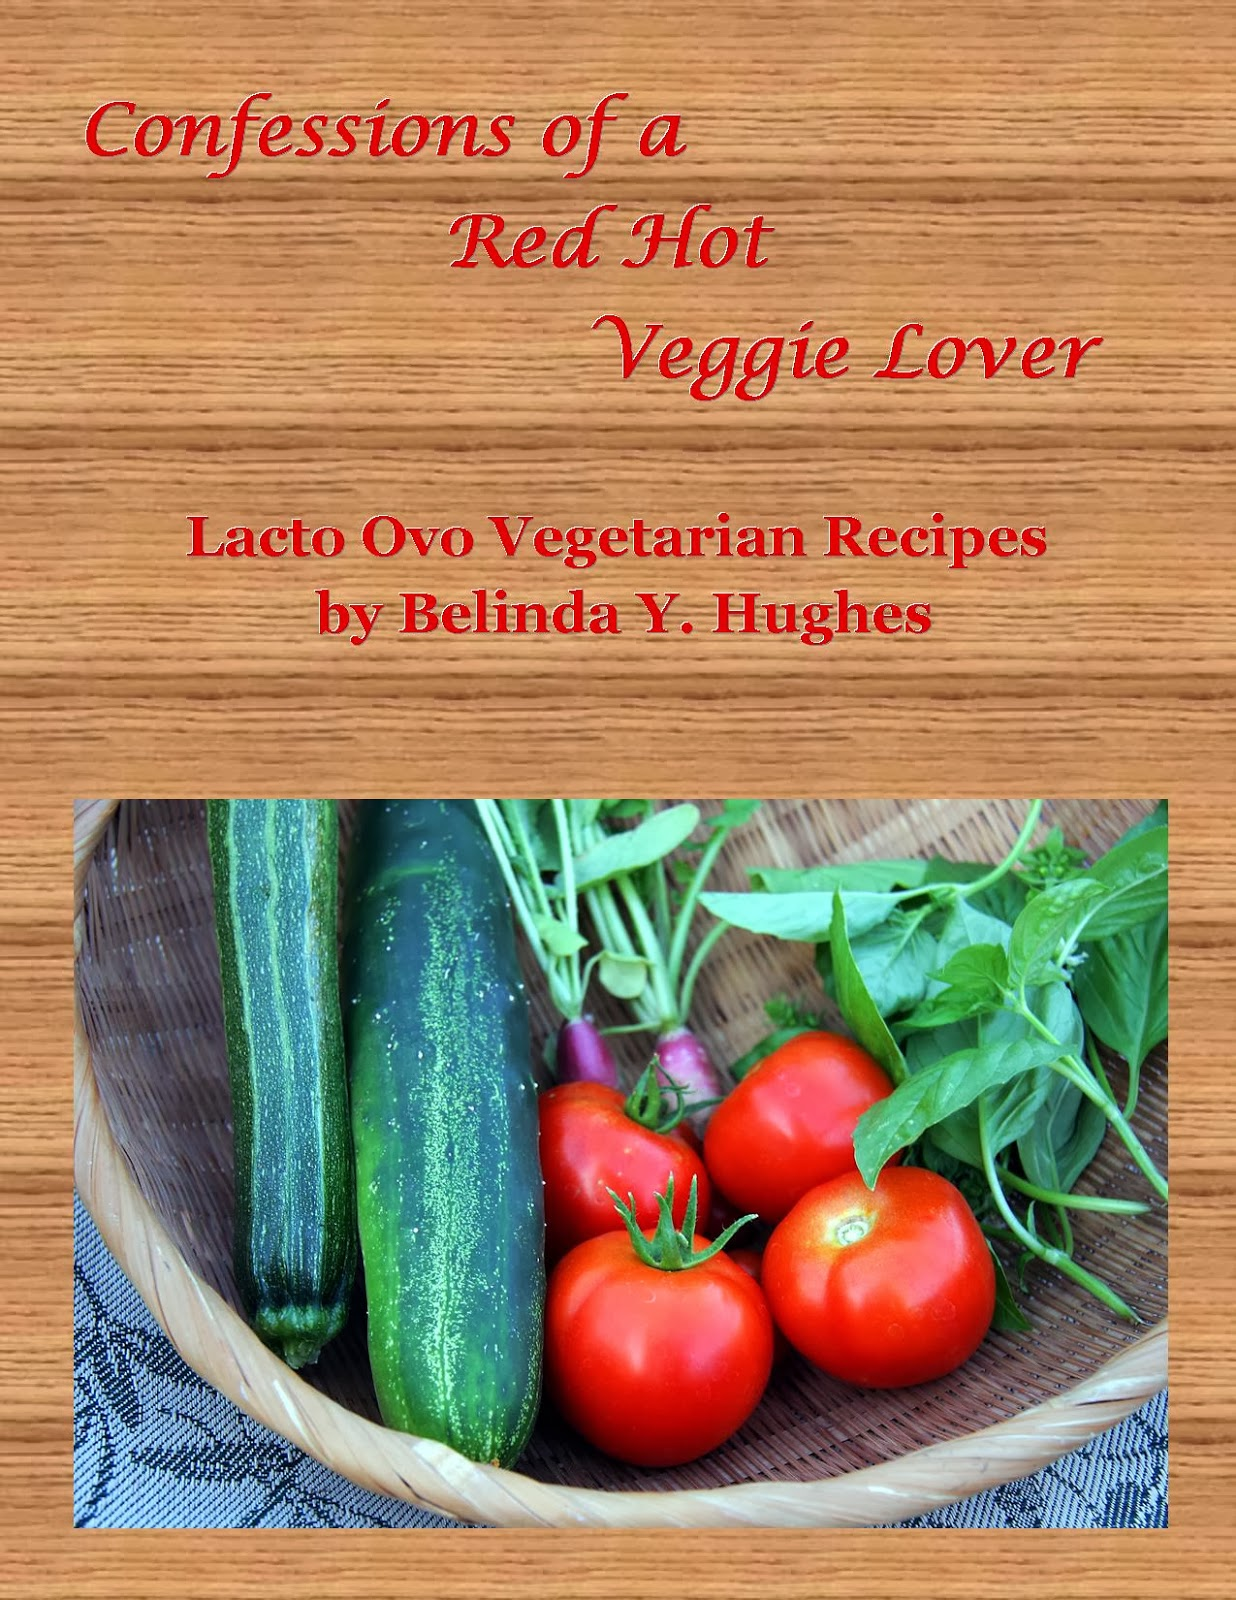 http://www.amazon.com/Confessions-Red-Hot-Veggie-Lover-ebook/dp/B00H4L35NM/